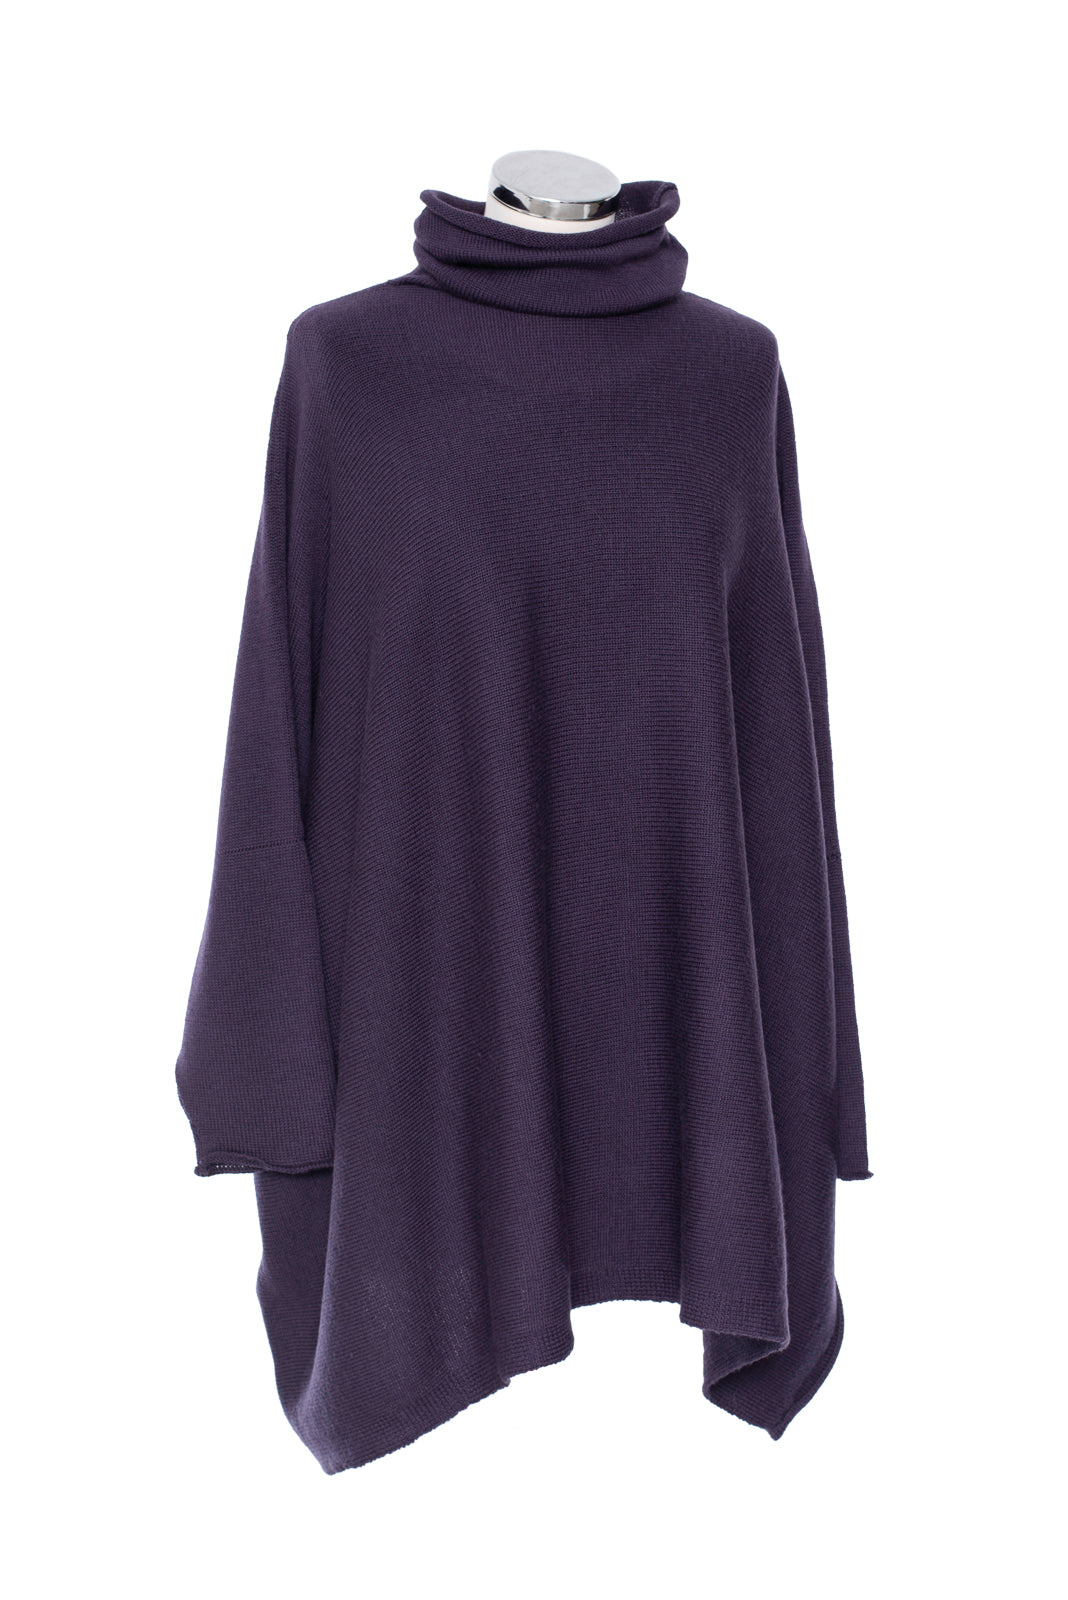 Berry Soft Collar Tunic